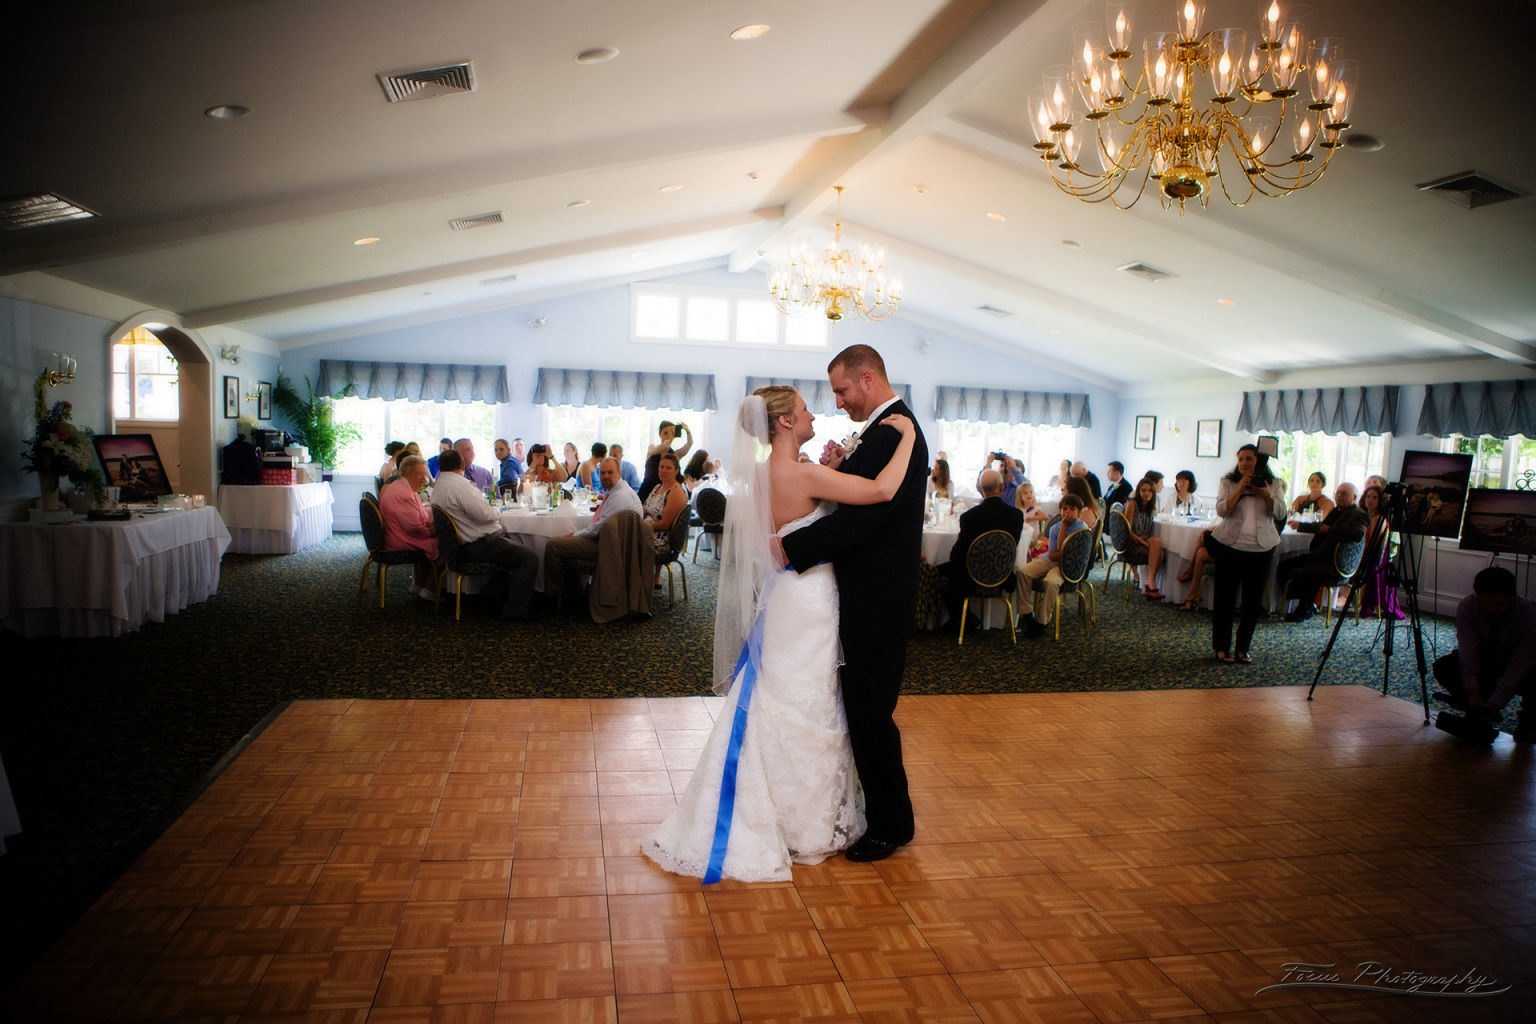 The bride and groom's first dance of their wedding